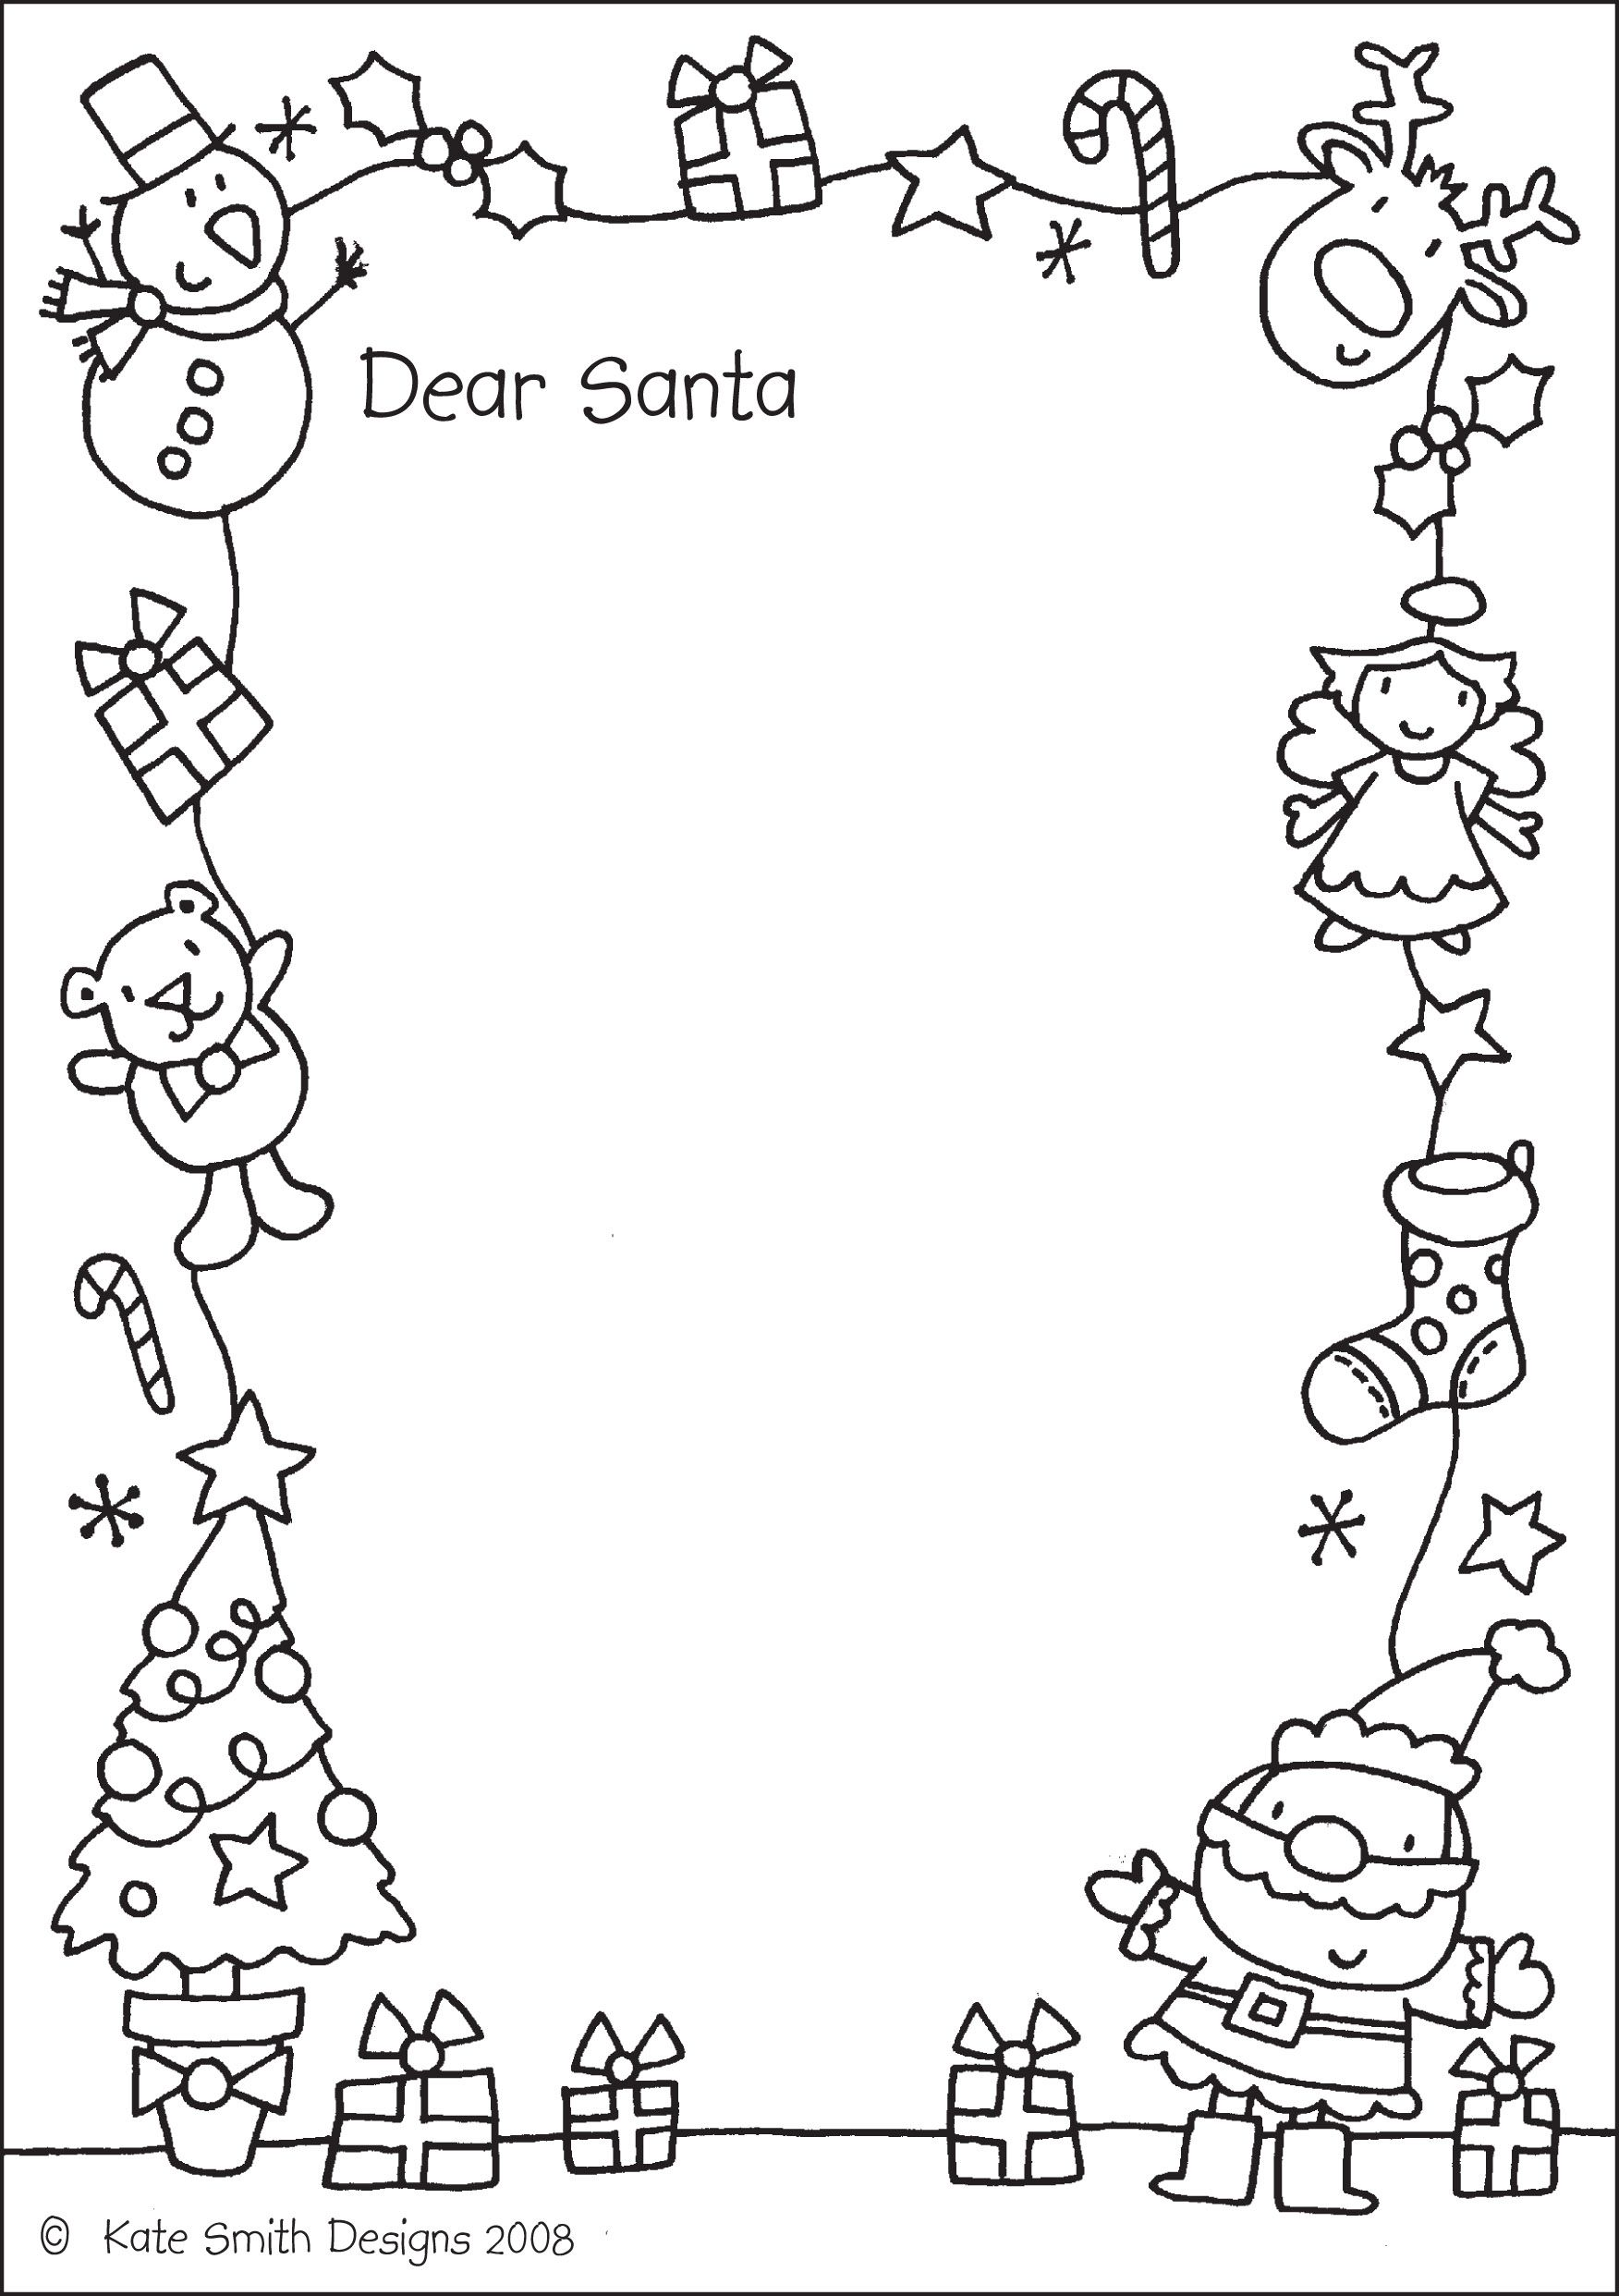 Dear Santa Coloring With Dont Forget To Bring Your Letters On 12 2 Christmas